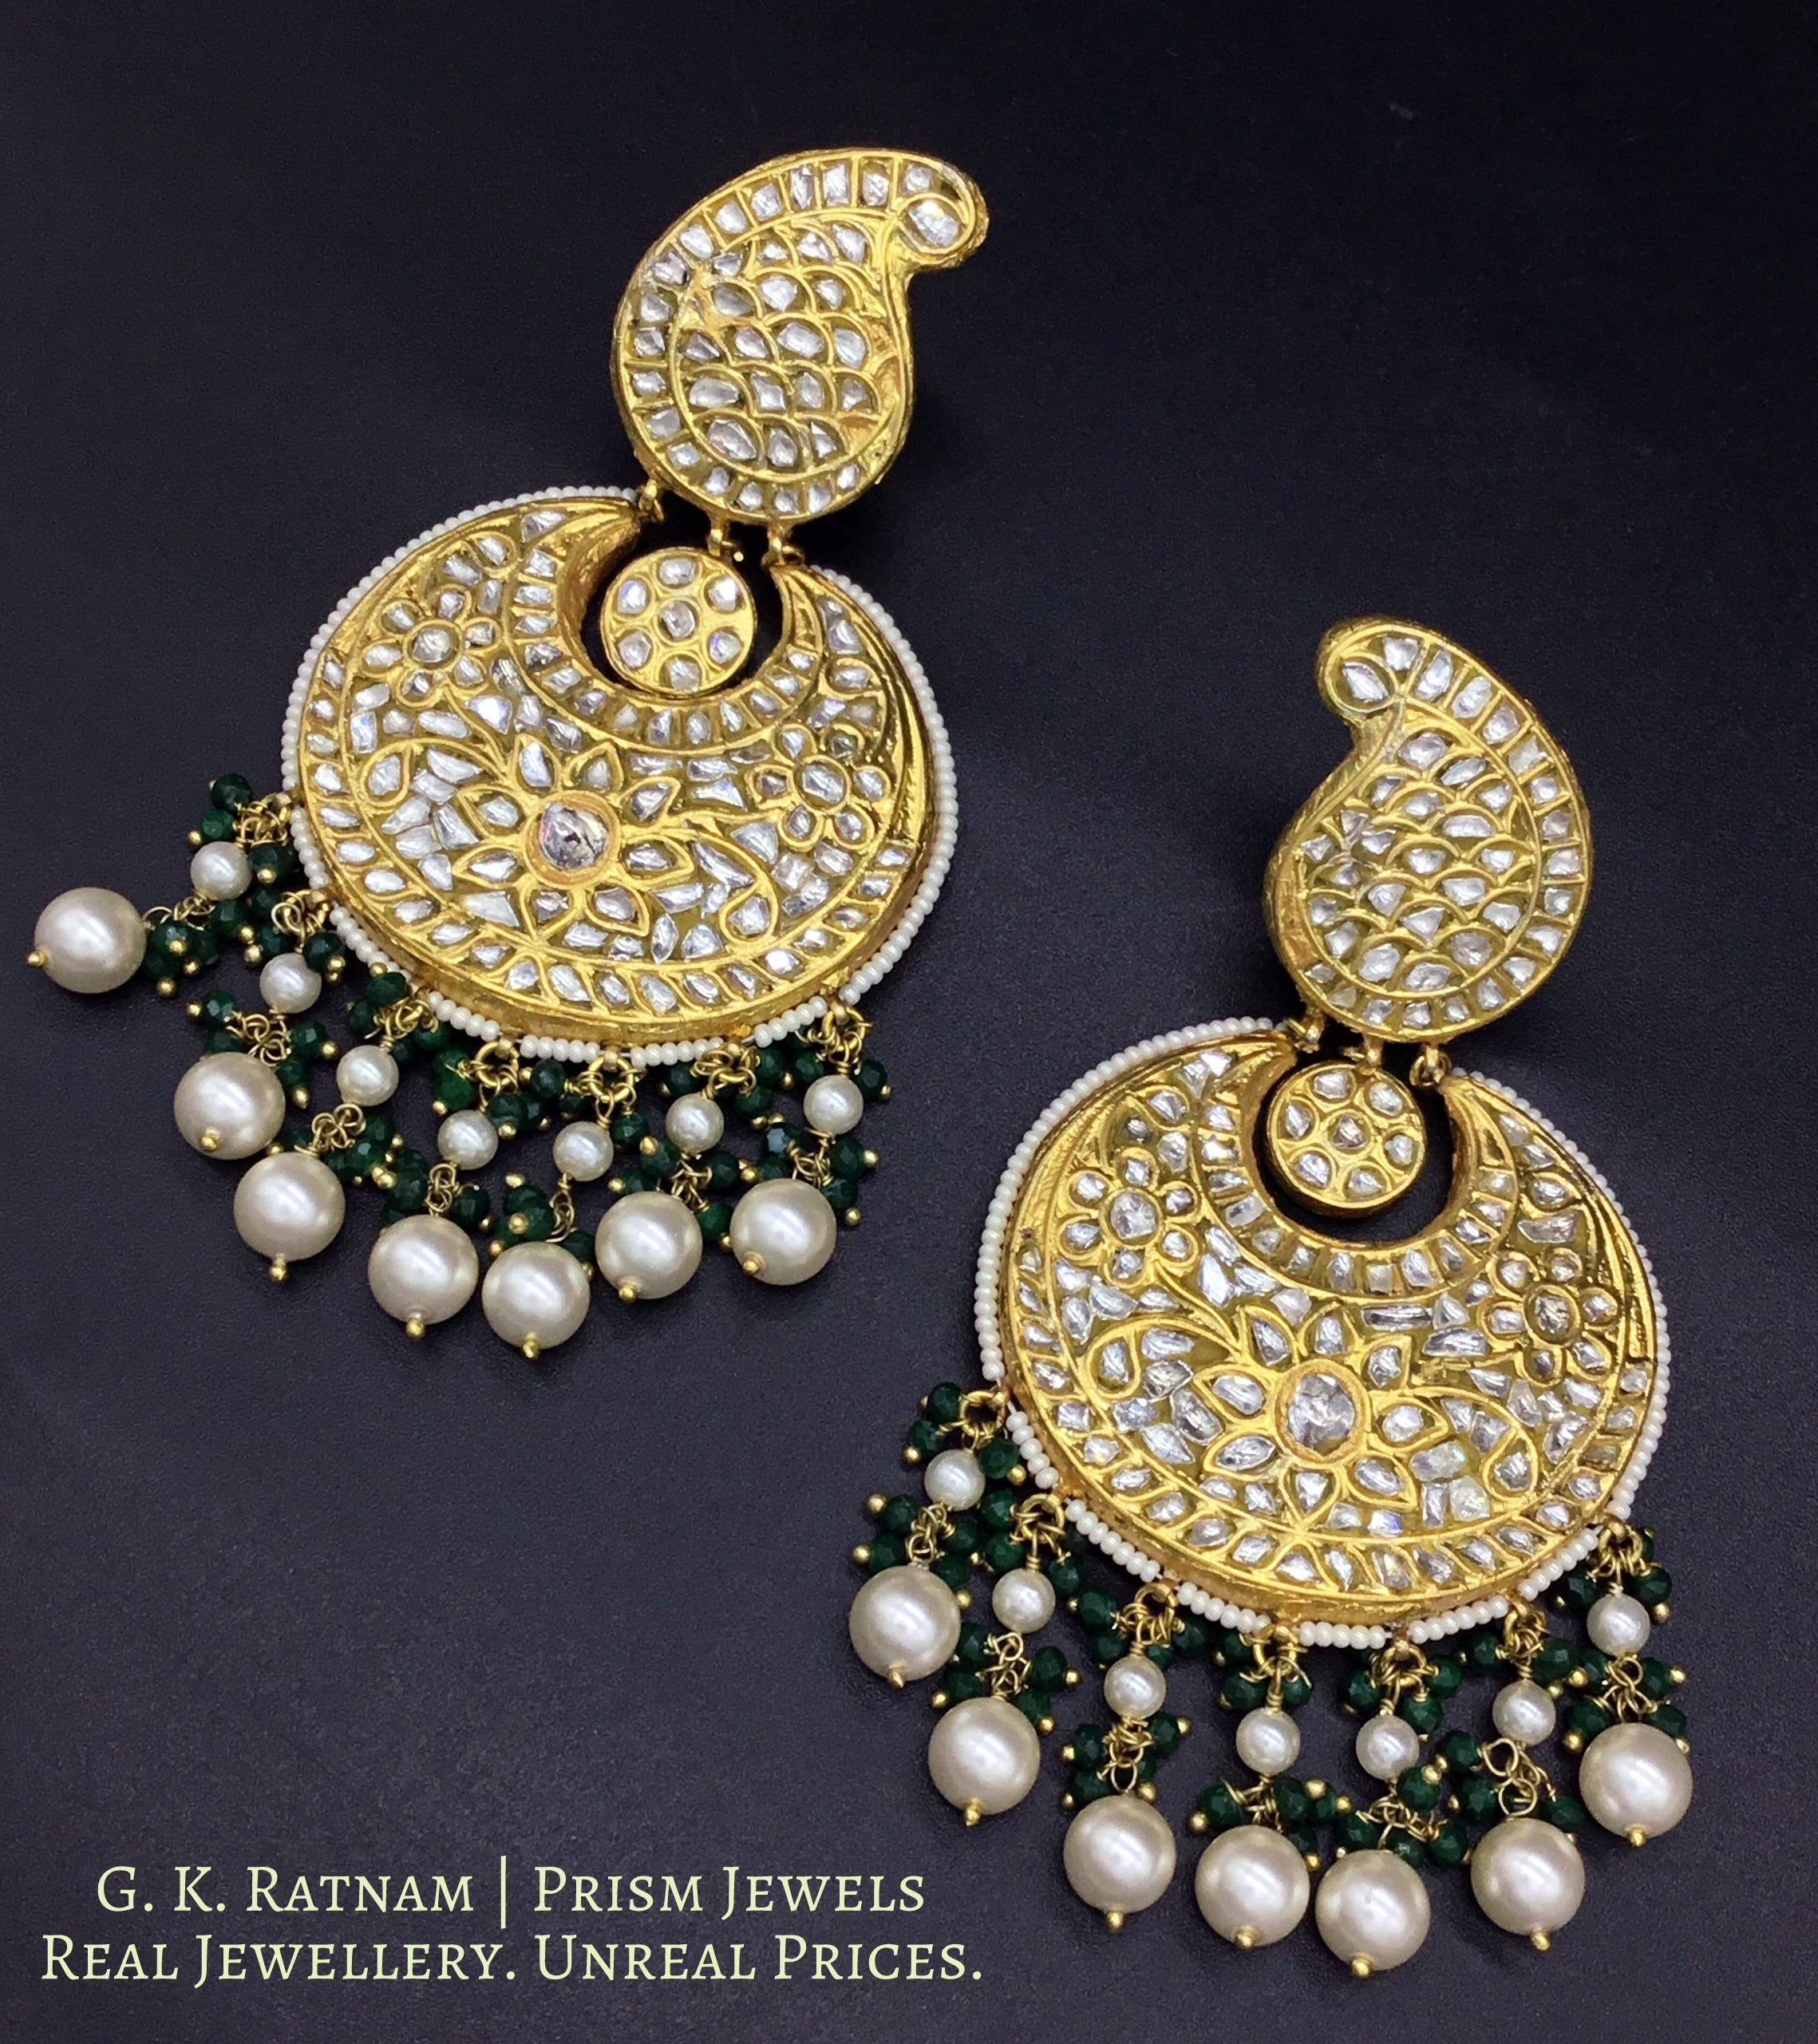 23k Gold and Diamond Polki Chand Bali Earring Pair with pearl chandeliers - gold diamond polki kundan meena jadau jewellery